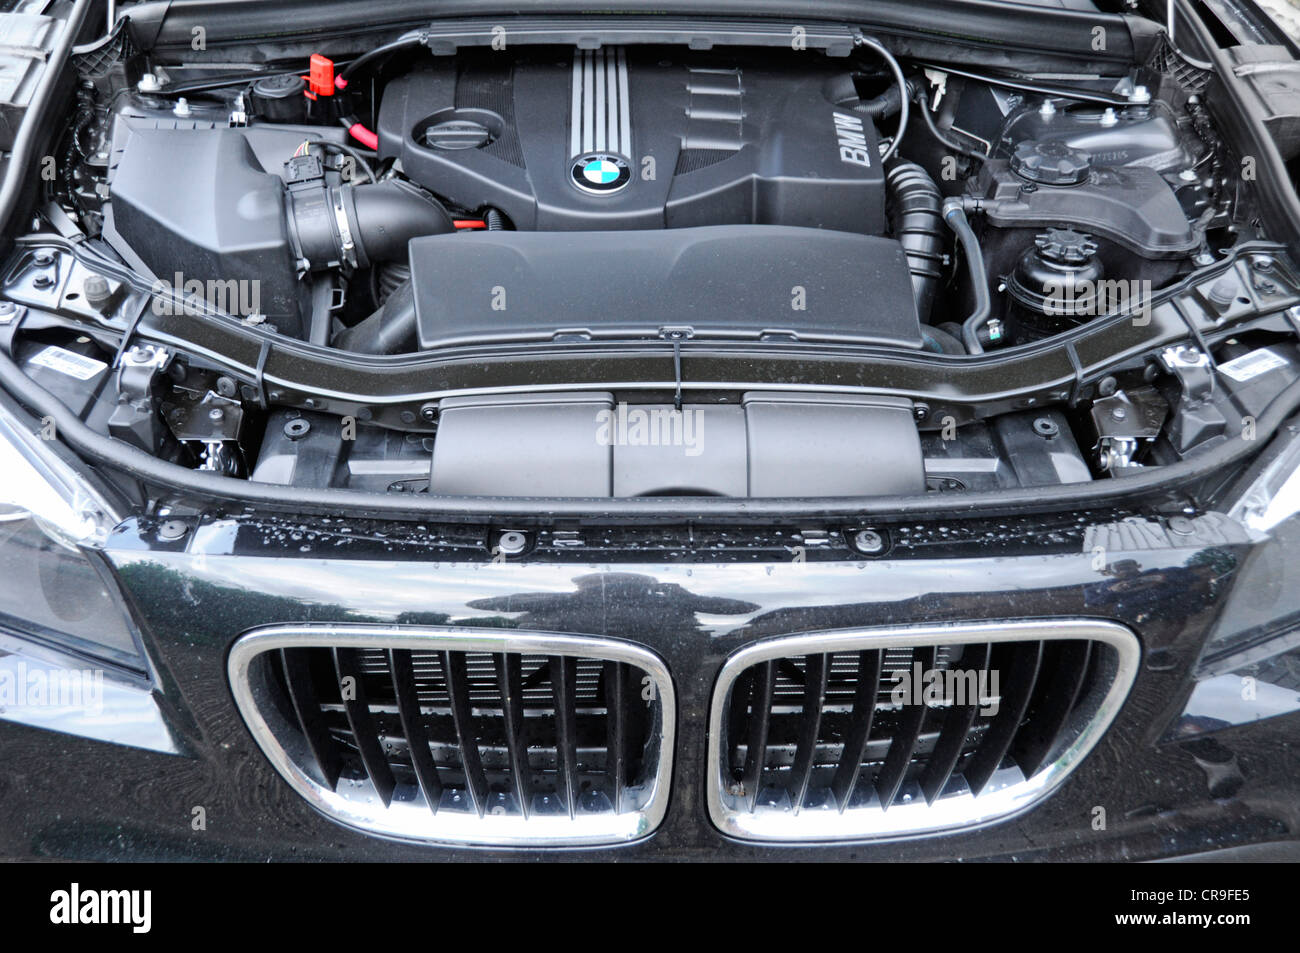 Engine compartment & components under the bonnet of a BMW X1 Sdrive ...